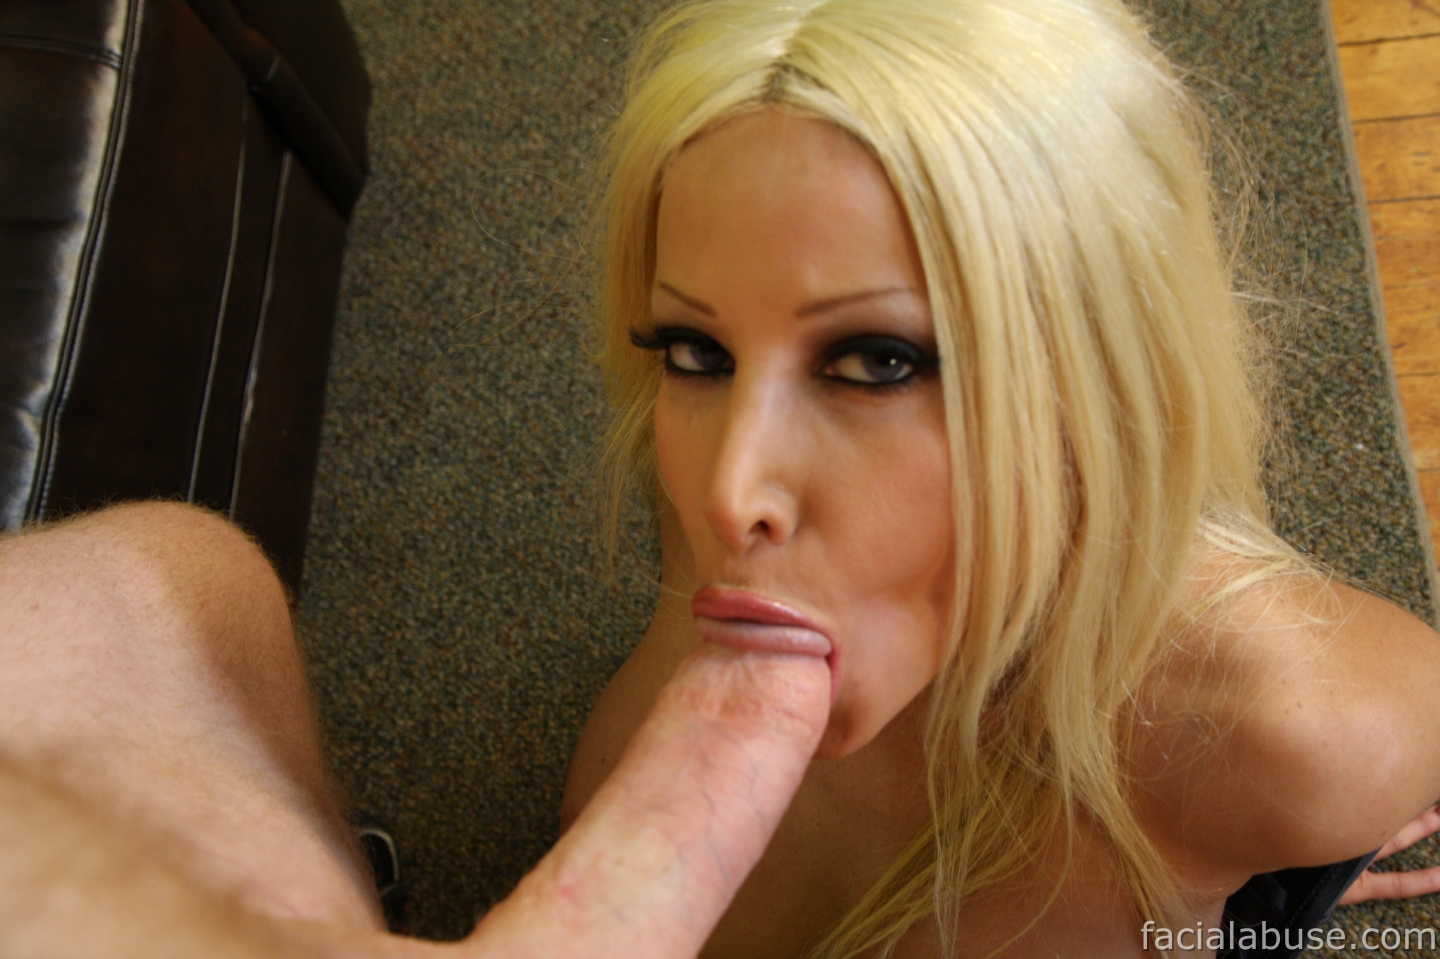 Legit Fuck. Gina lynn deepthroat monsters!